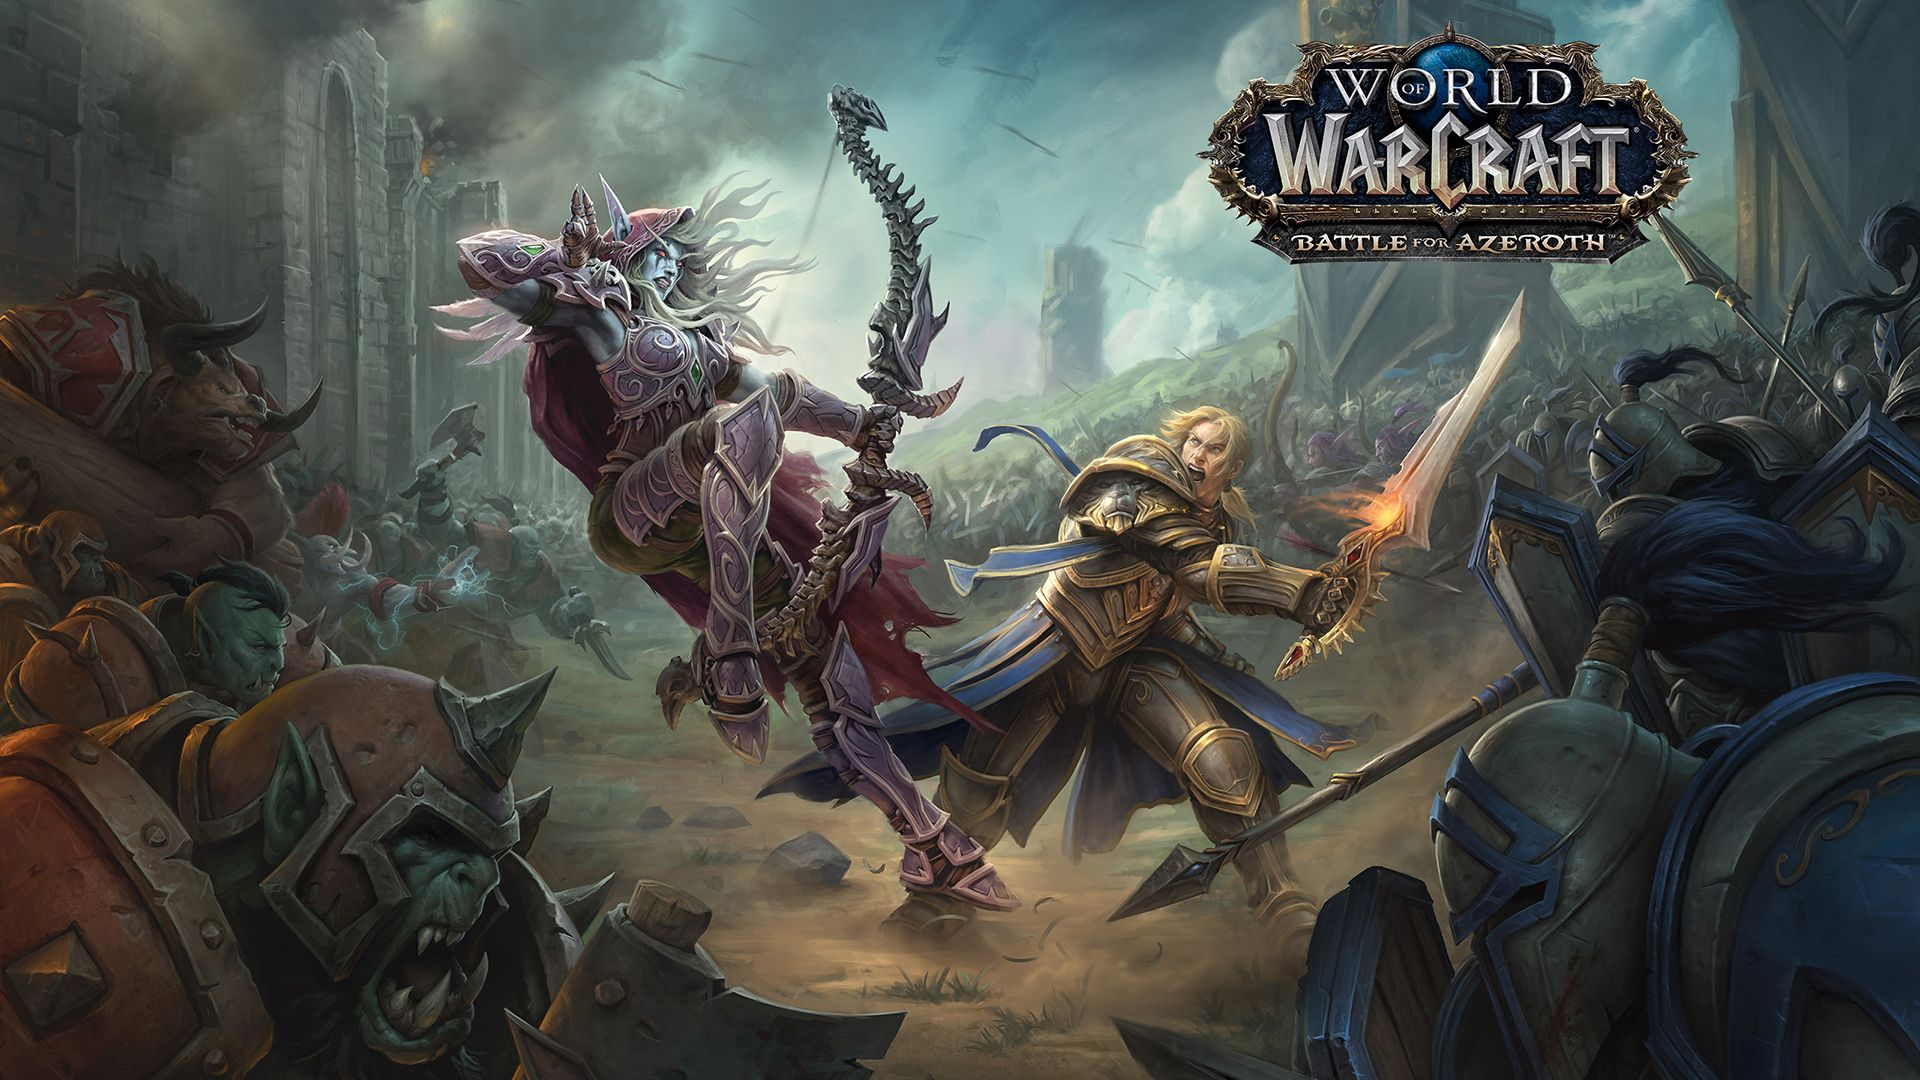 World Of Warcraft Battle For Azeroth Hd Wallpaper World Of